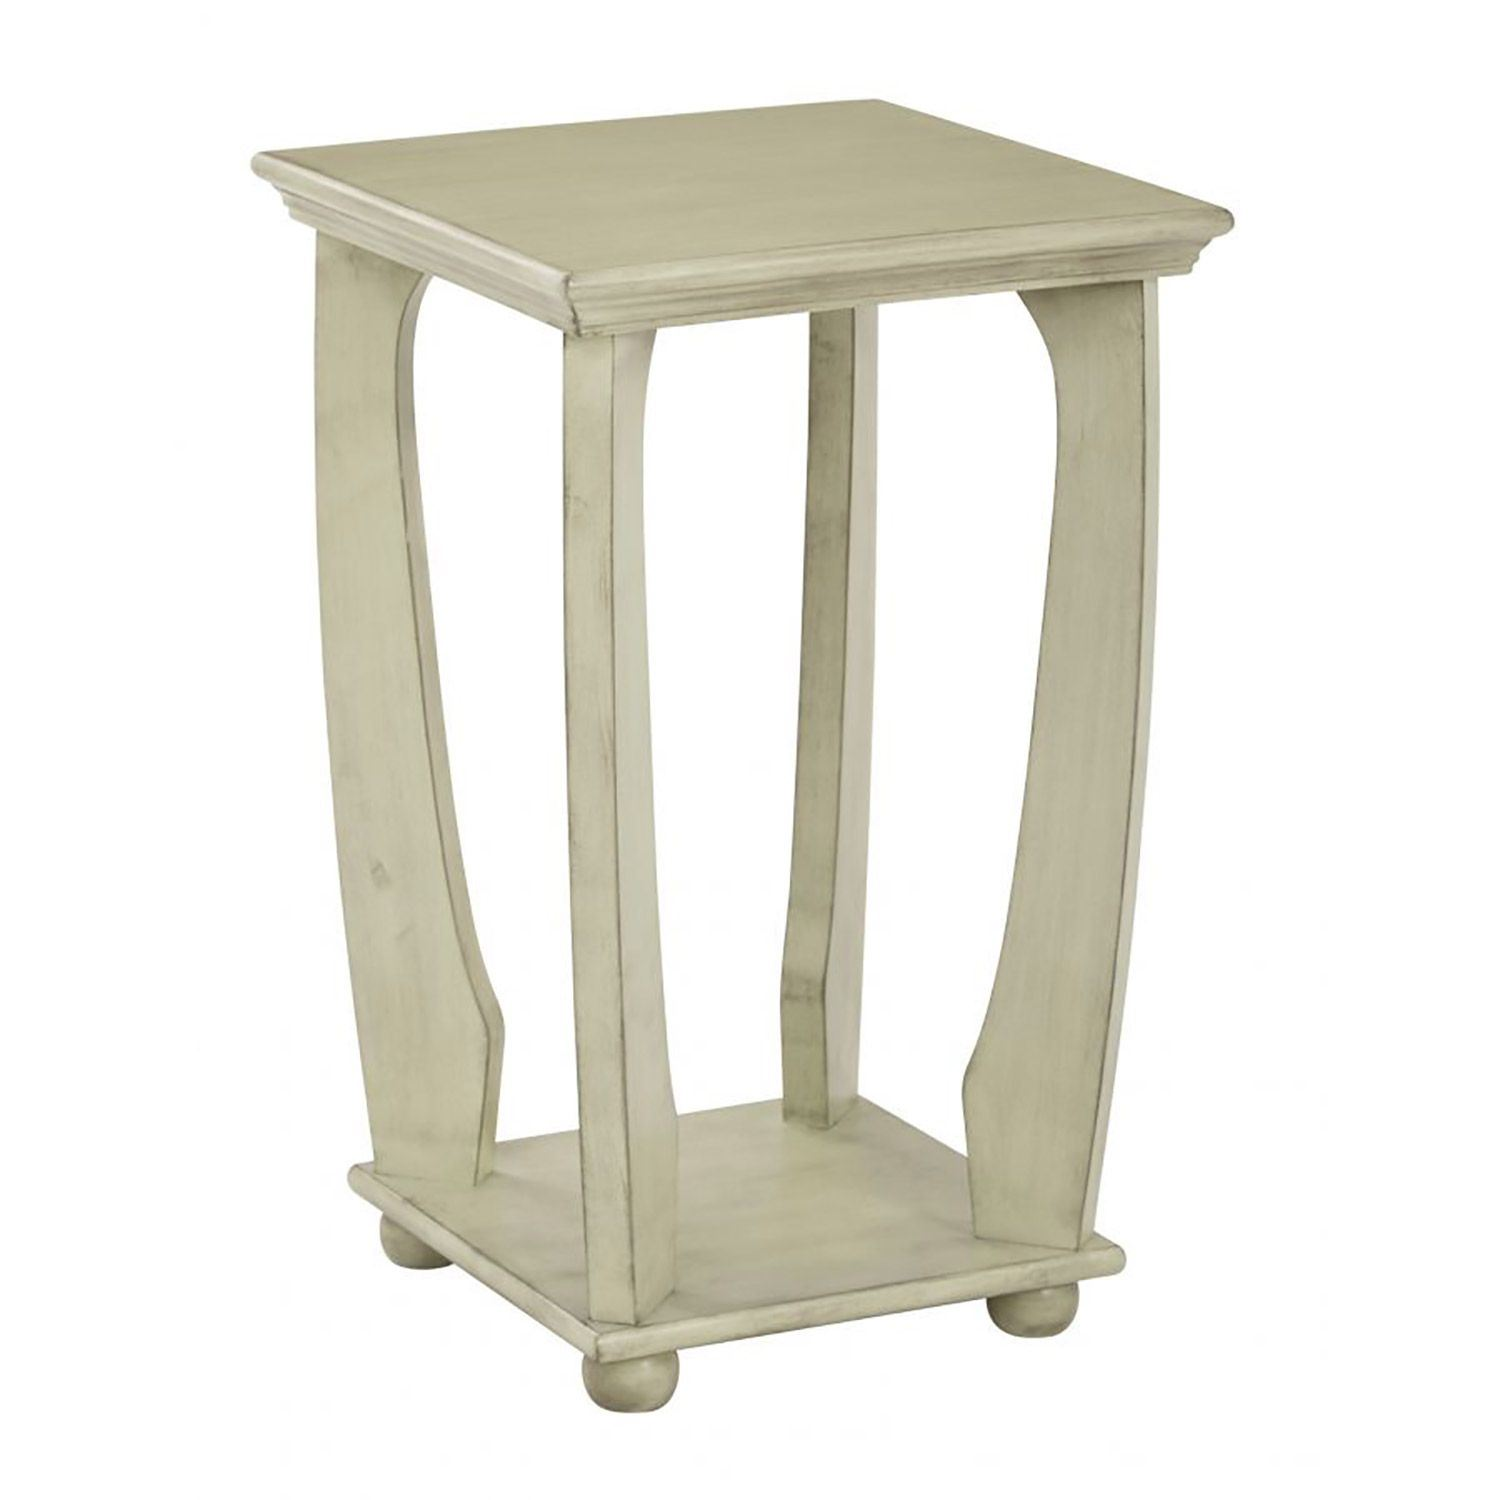 mila celadon square accent table office star afw squareuare antique dining room metal side tables for living traditional lamps furniture legs white set pottery barn teen floor